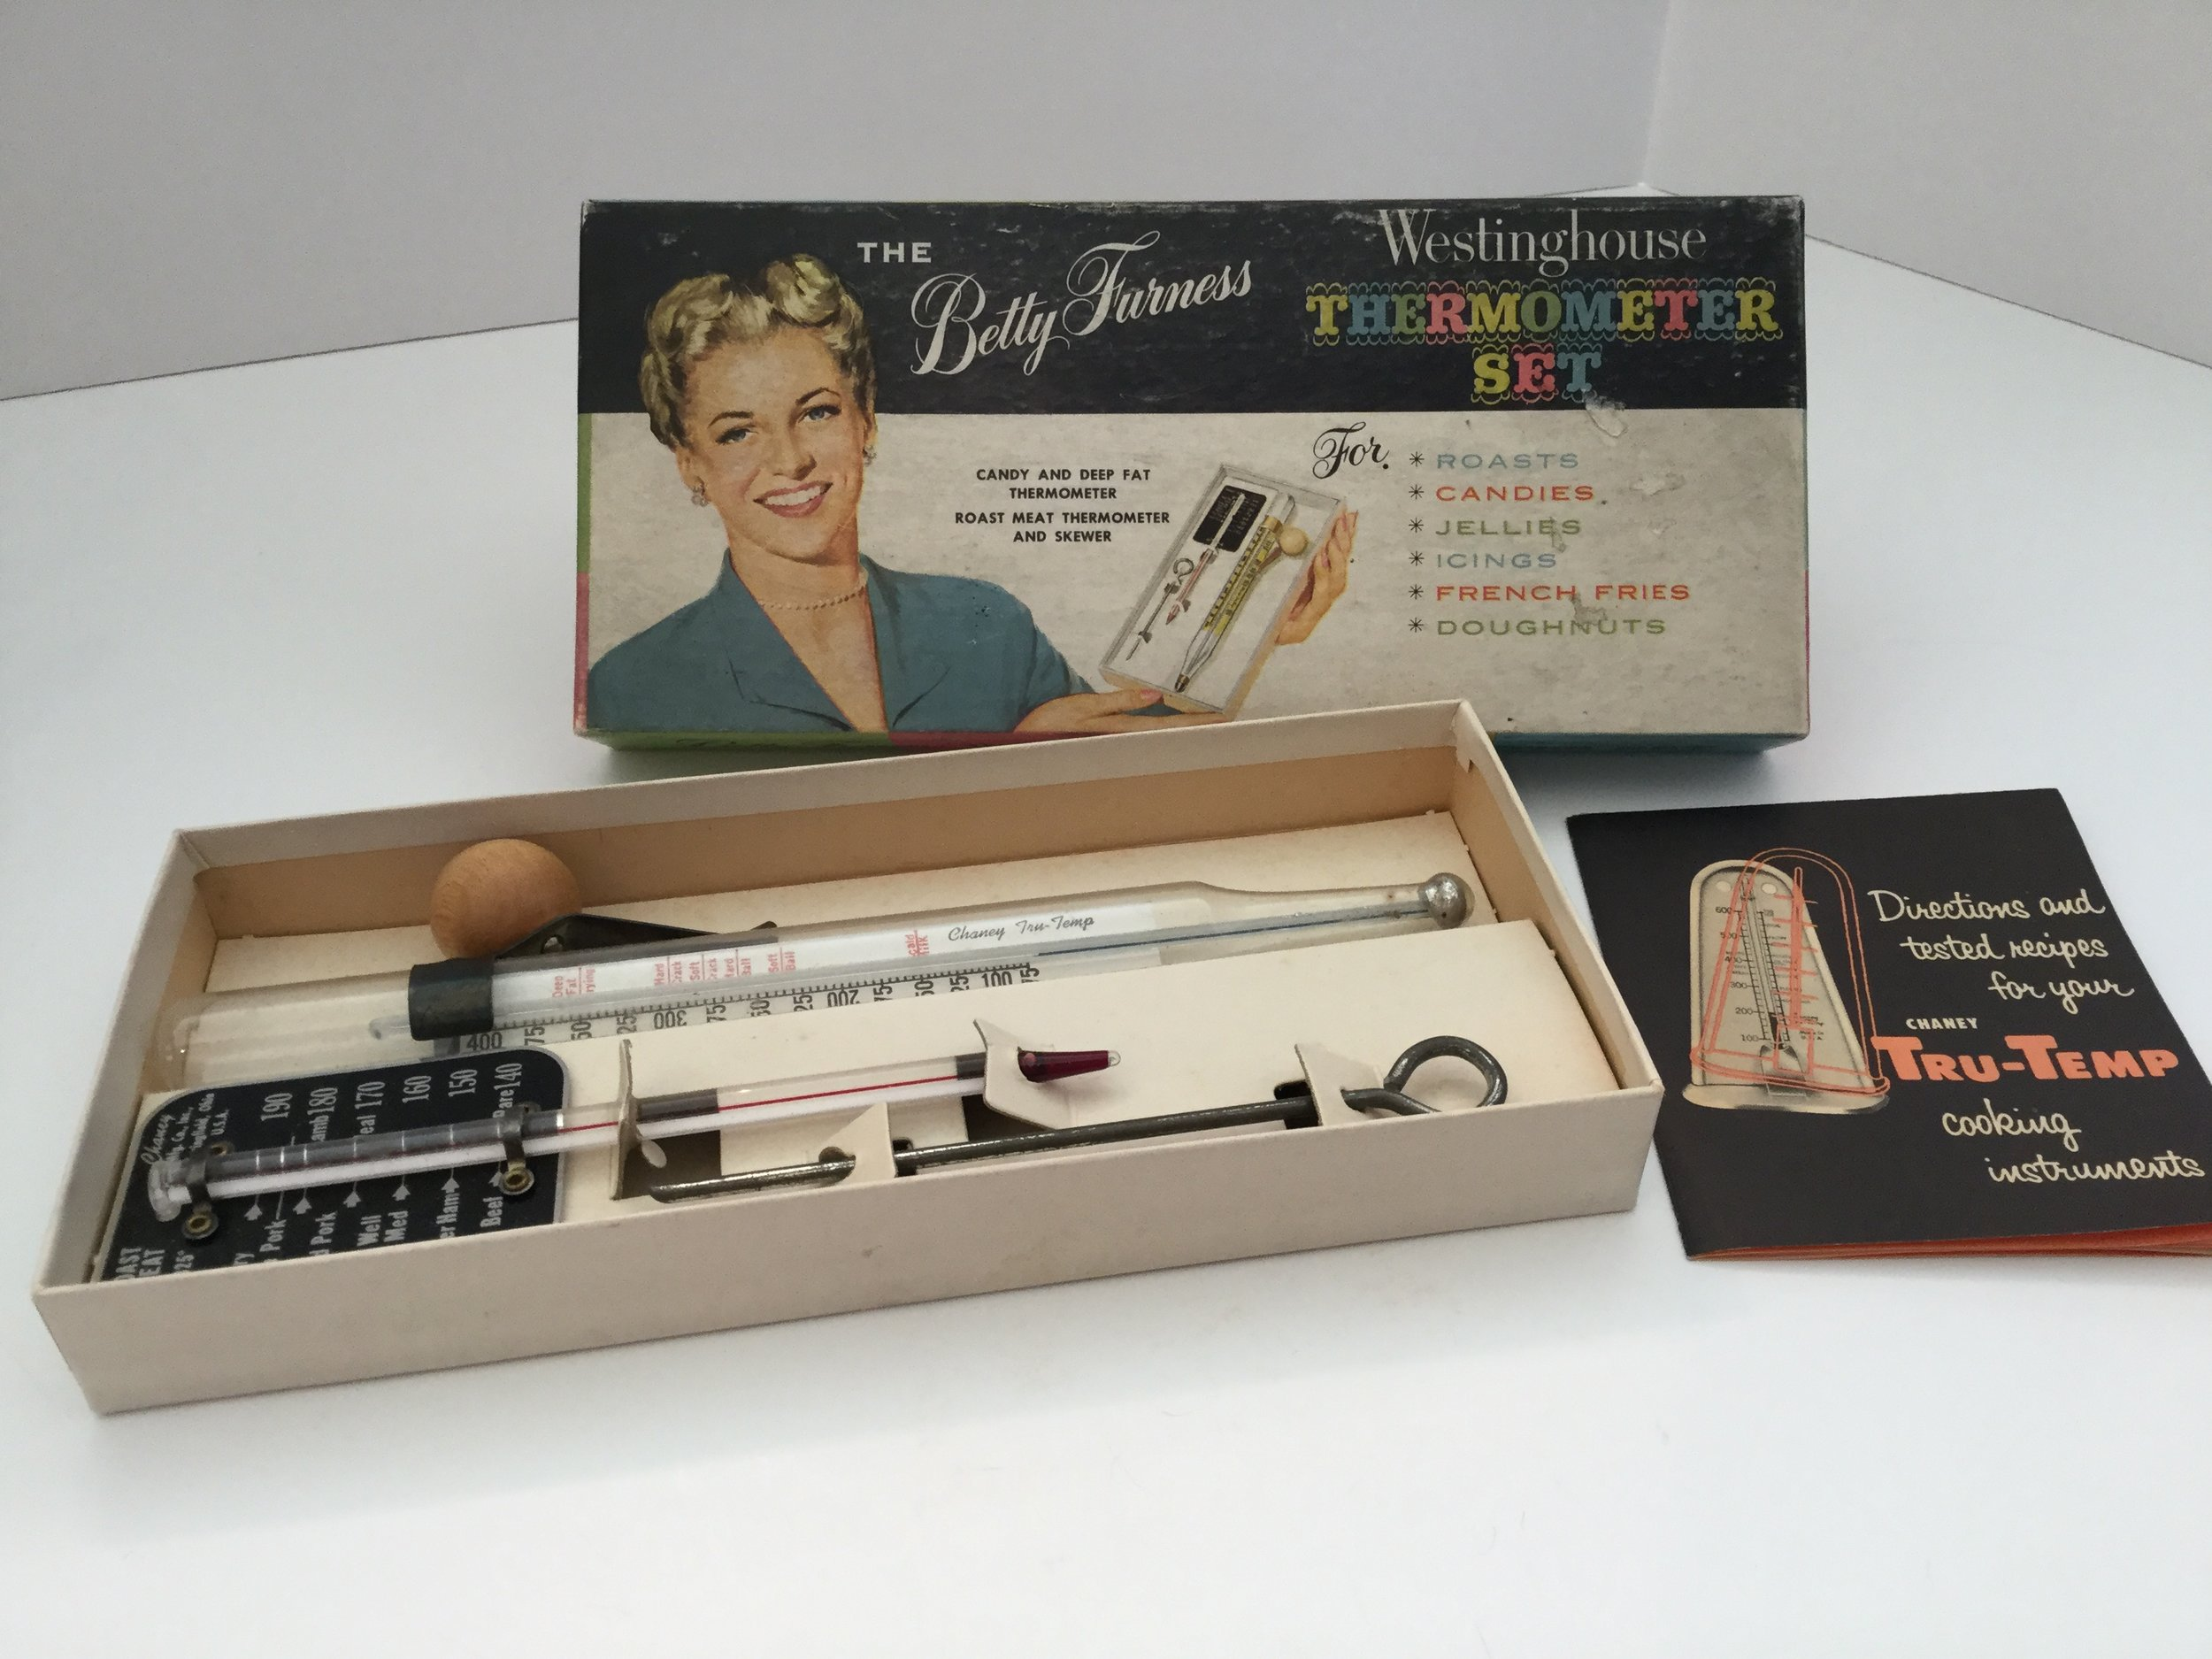 A set of Westinghouse thermometers for the kitchen